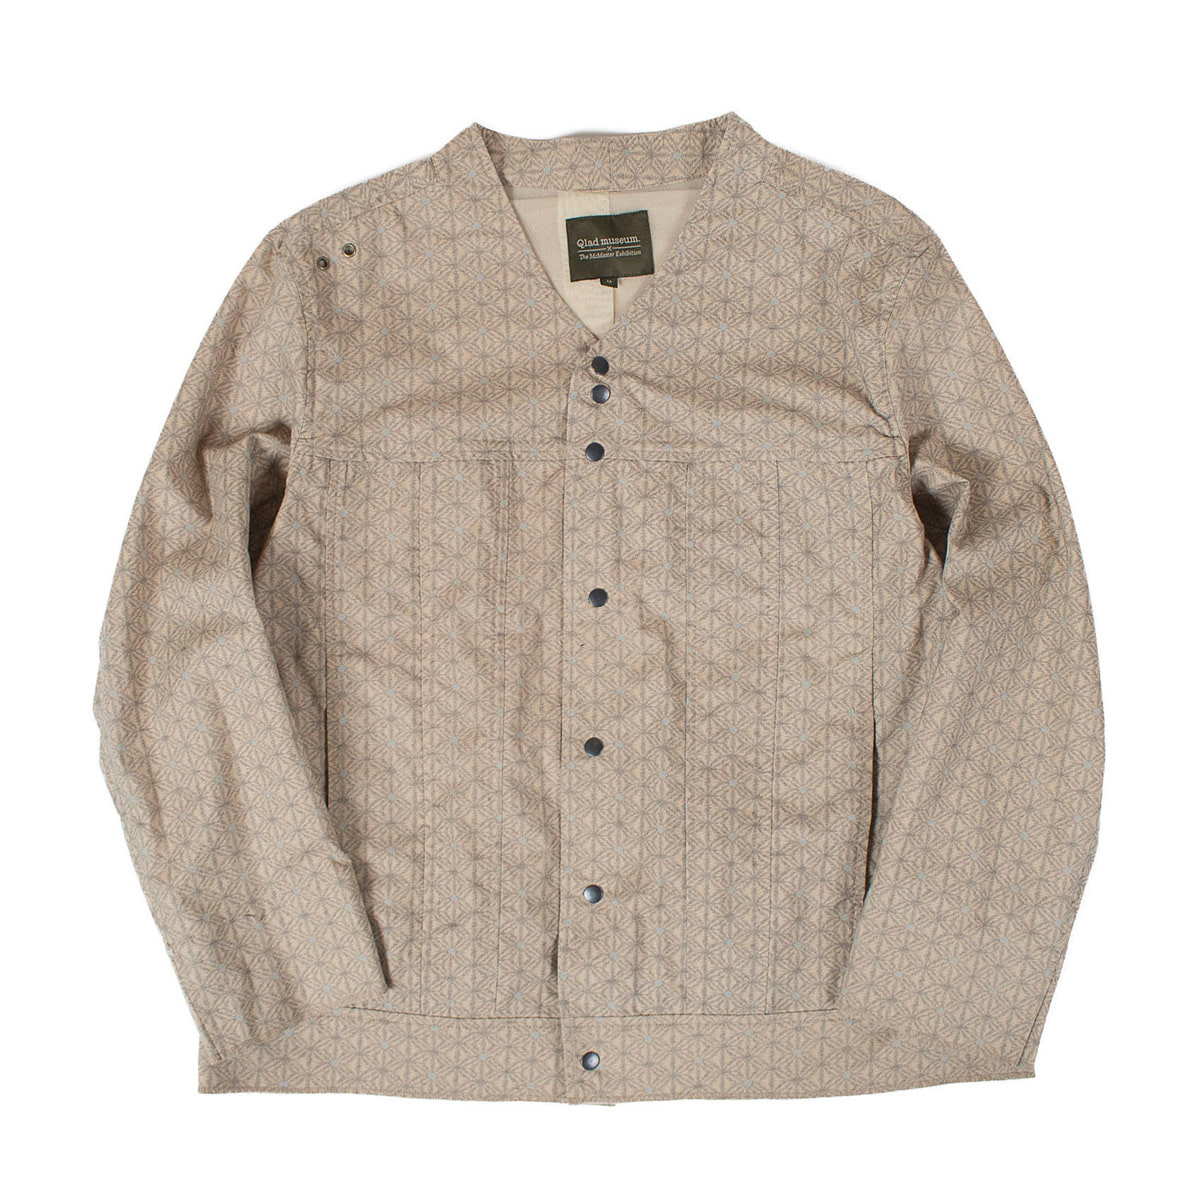 Saku Trucker Jacket (Beige)